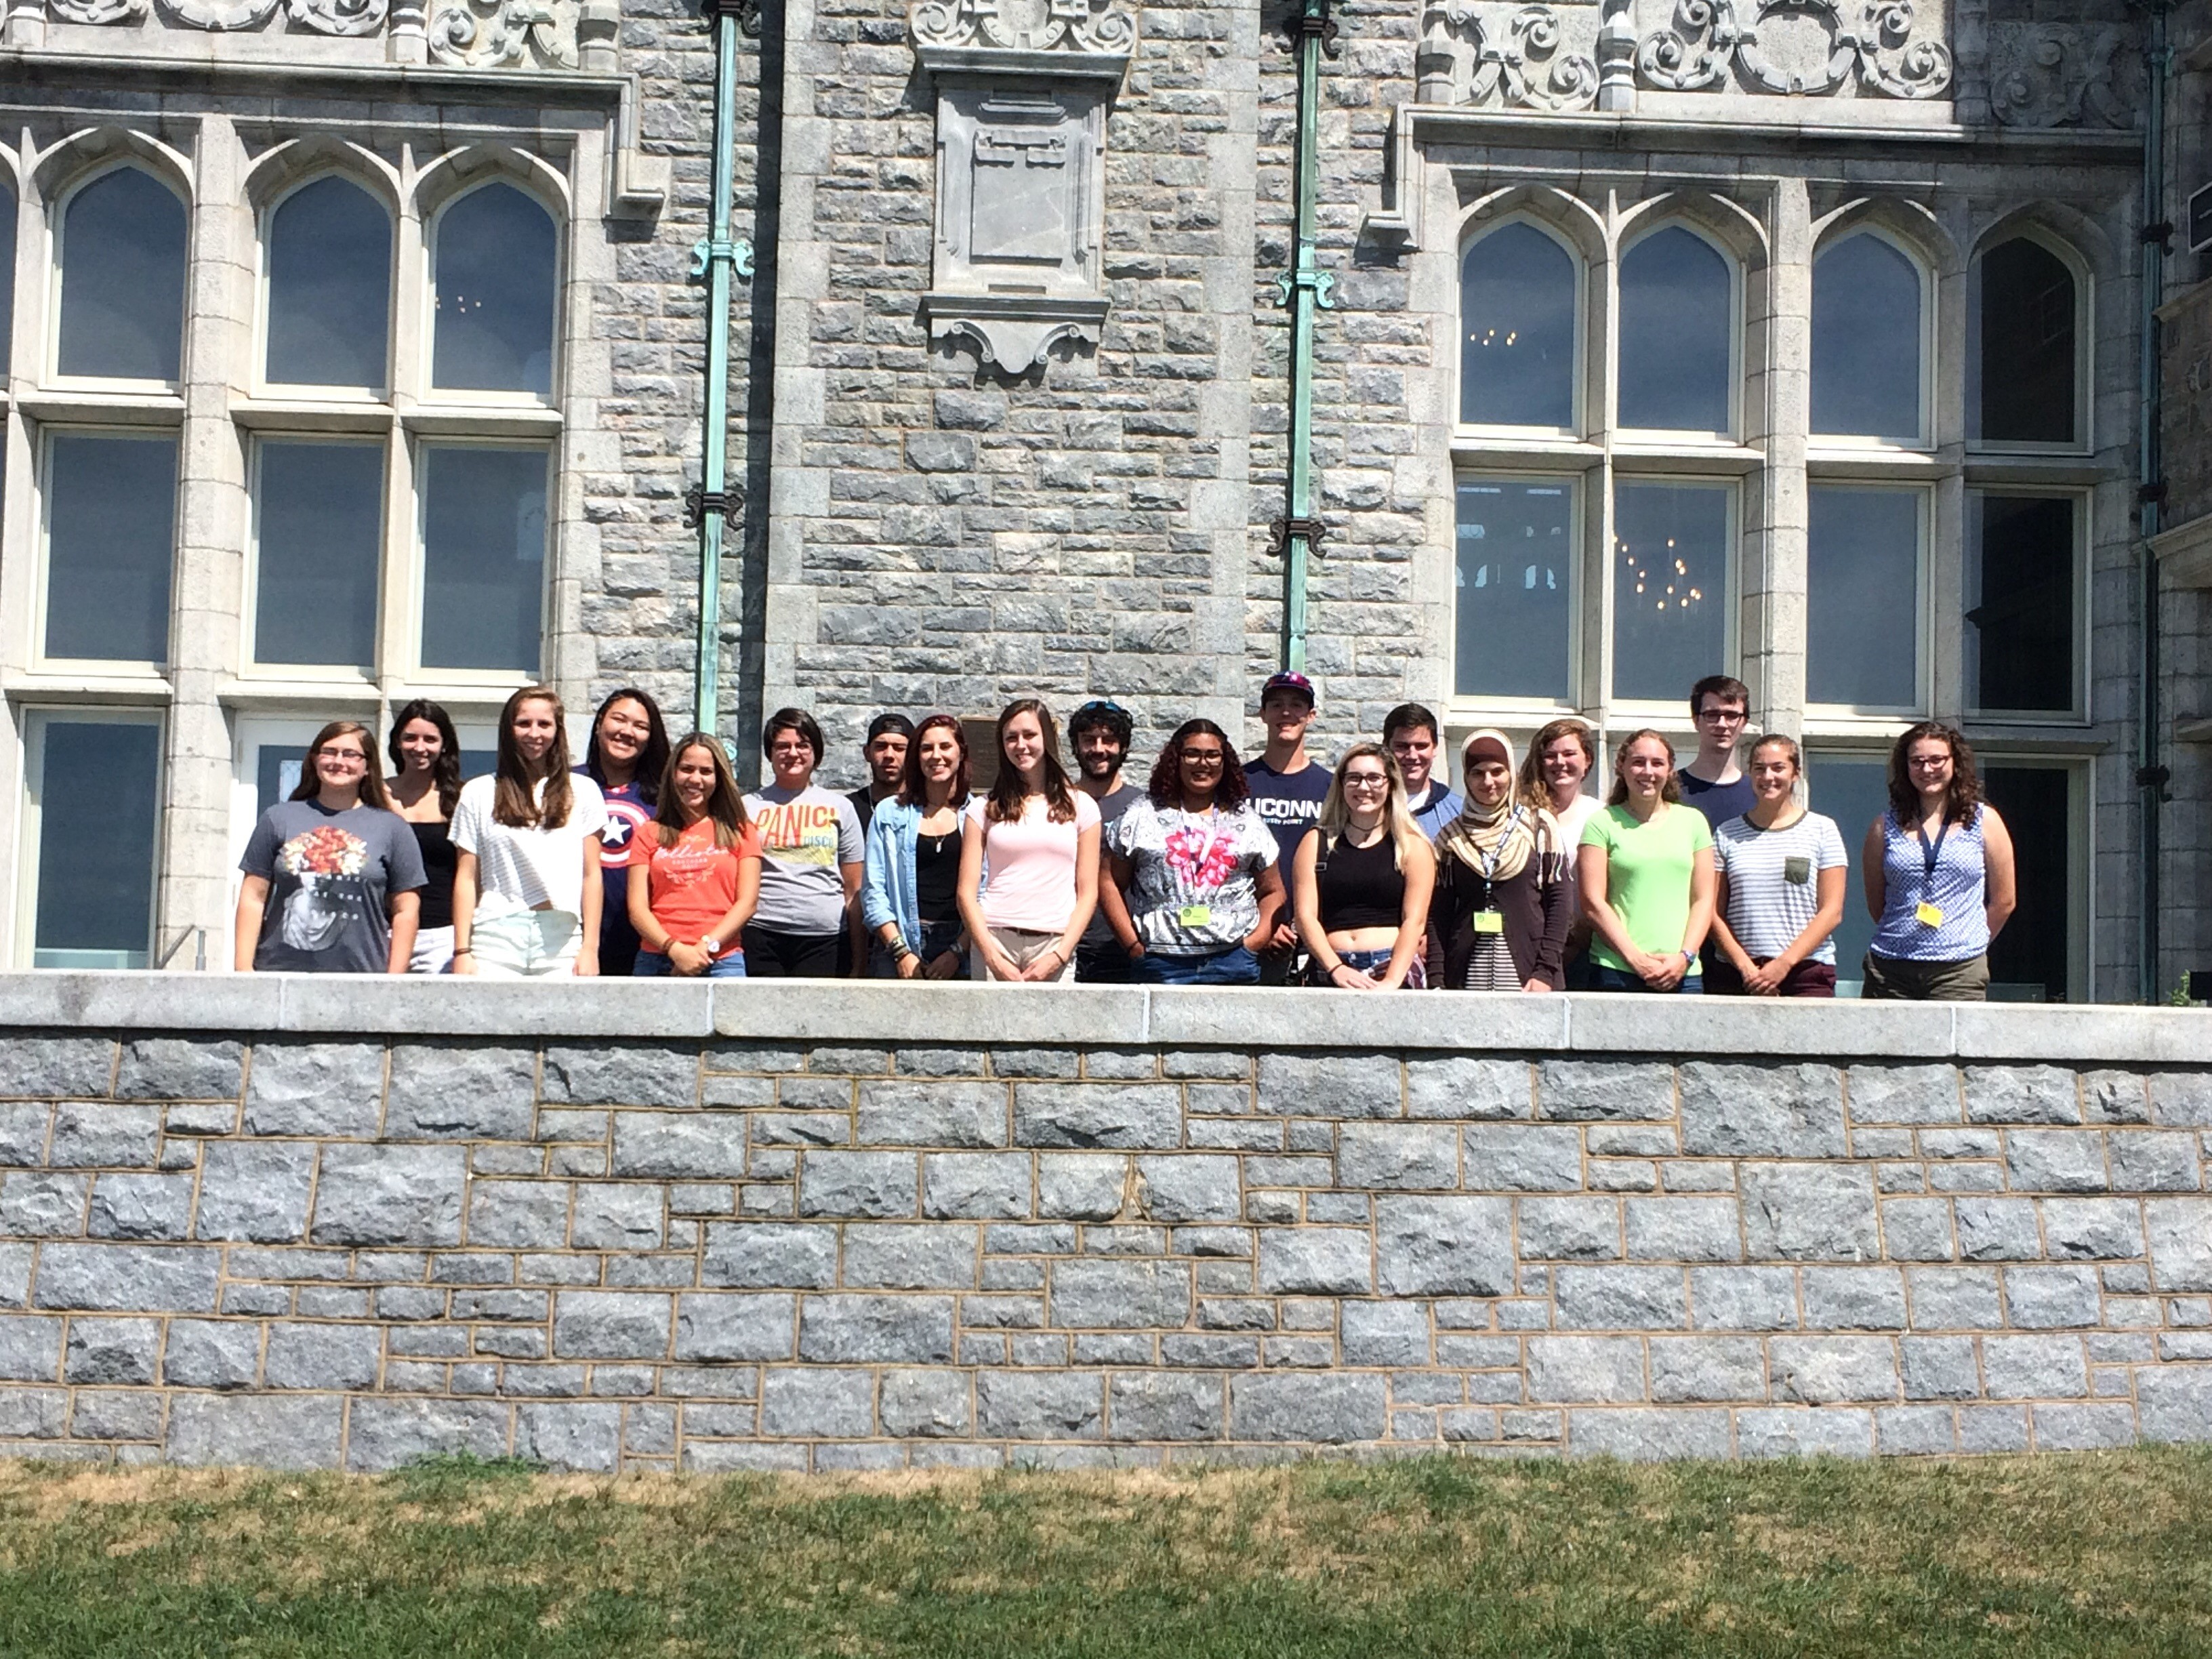 A group picture of the APAC staff on the patio of the Branford House